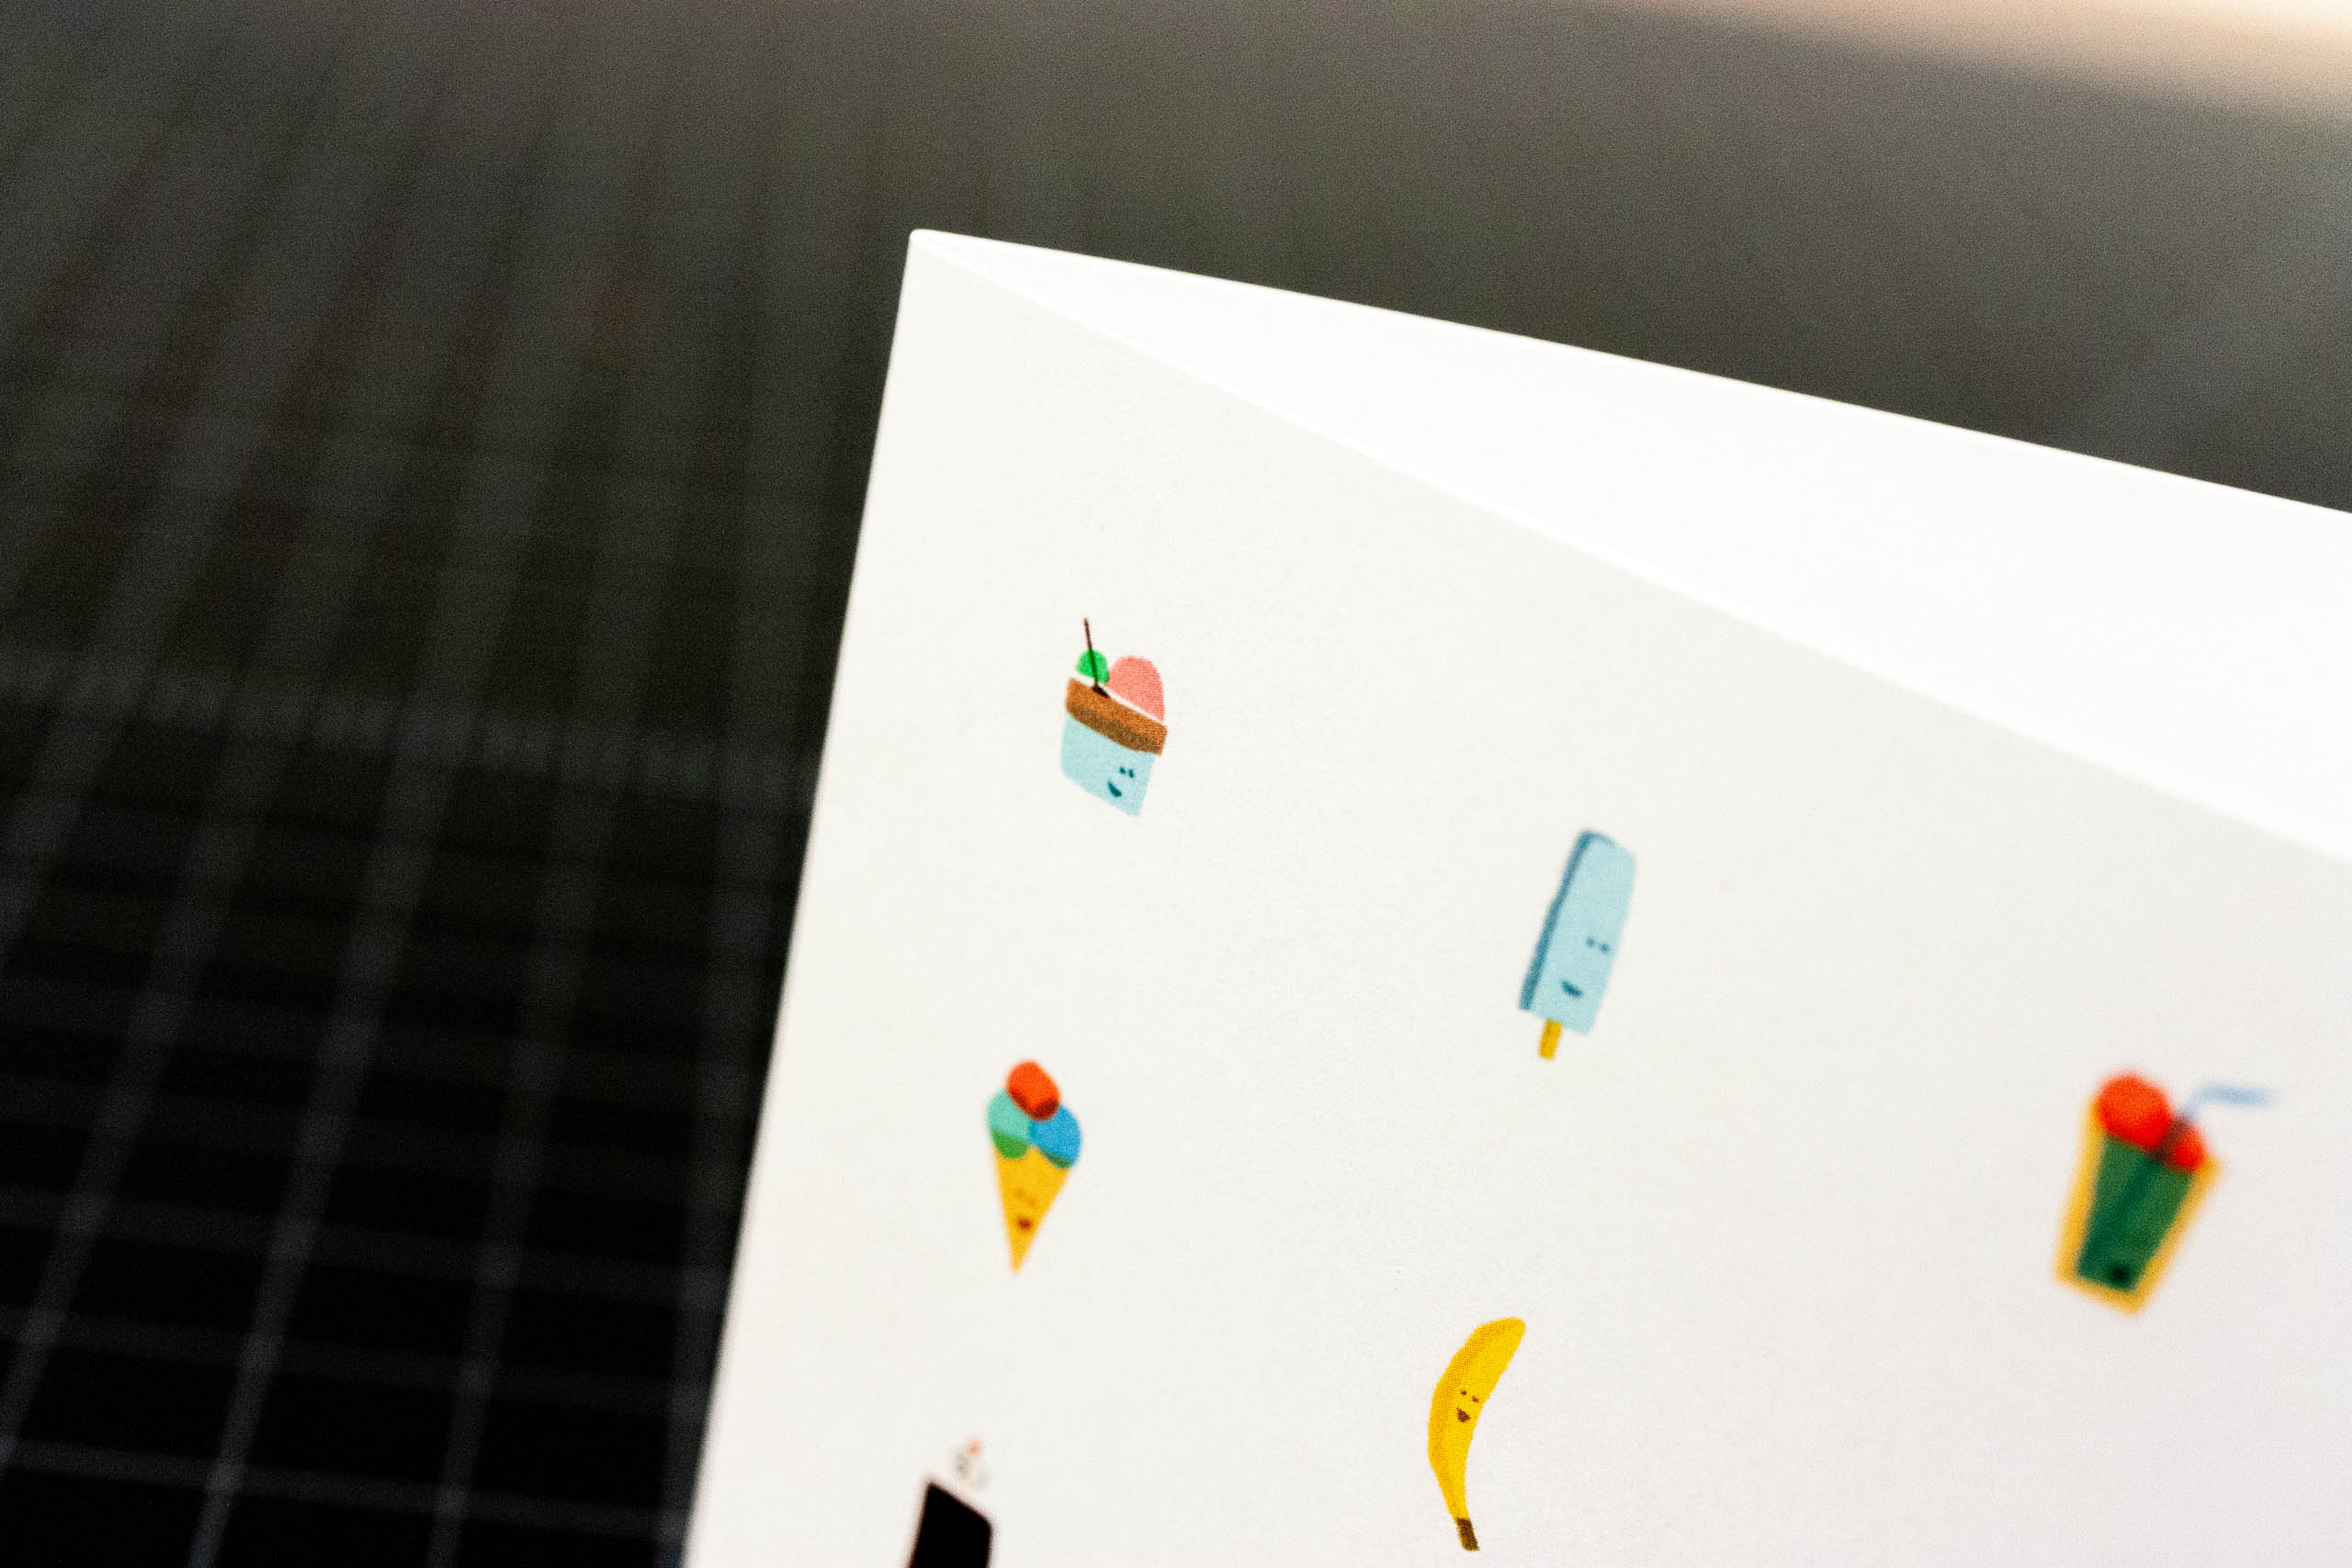 Say Hello Gift card with a series of ice cream related illustrations – by Yagnyuk.